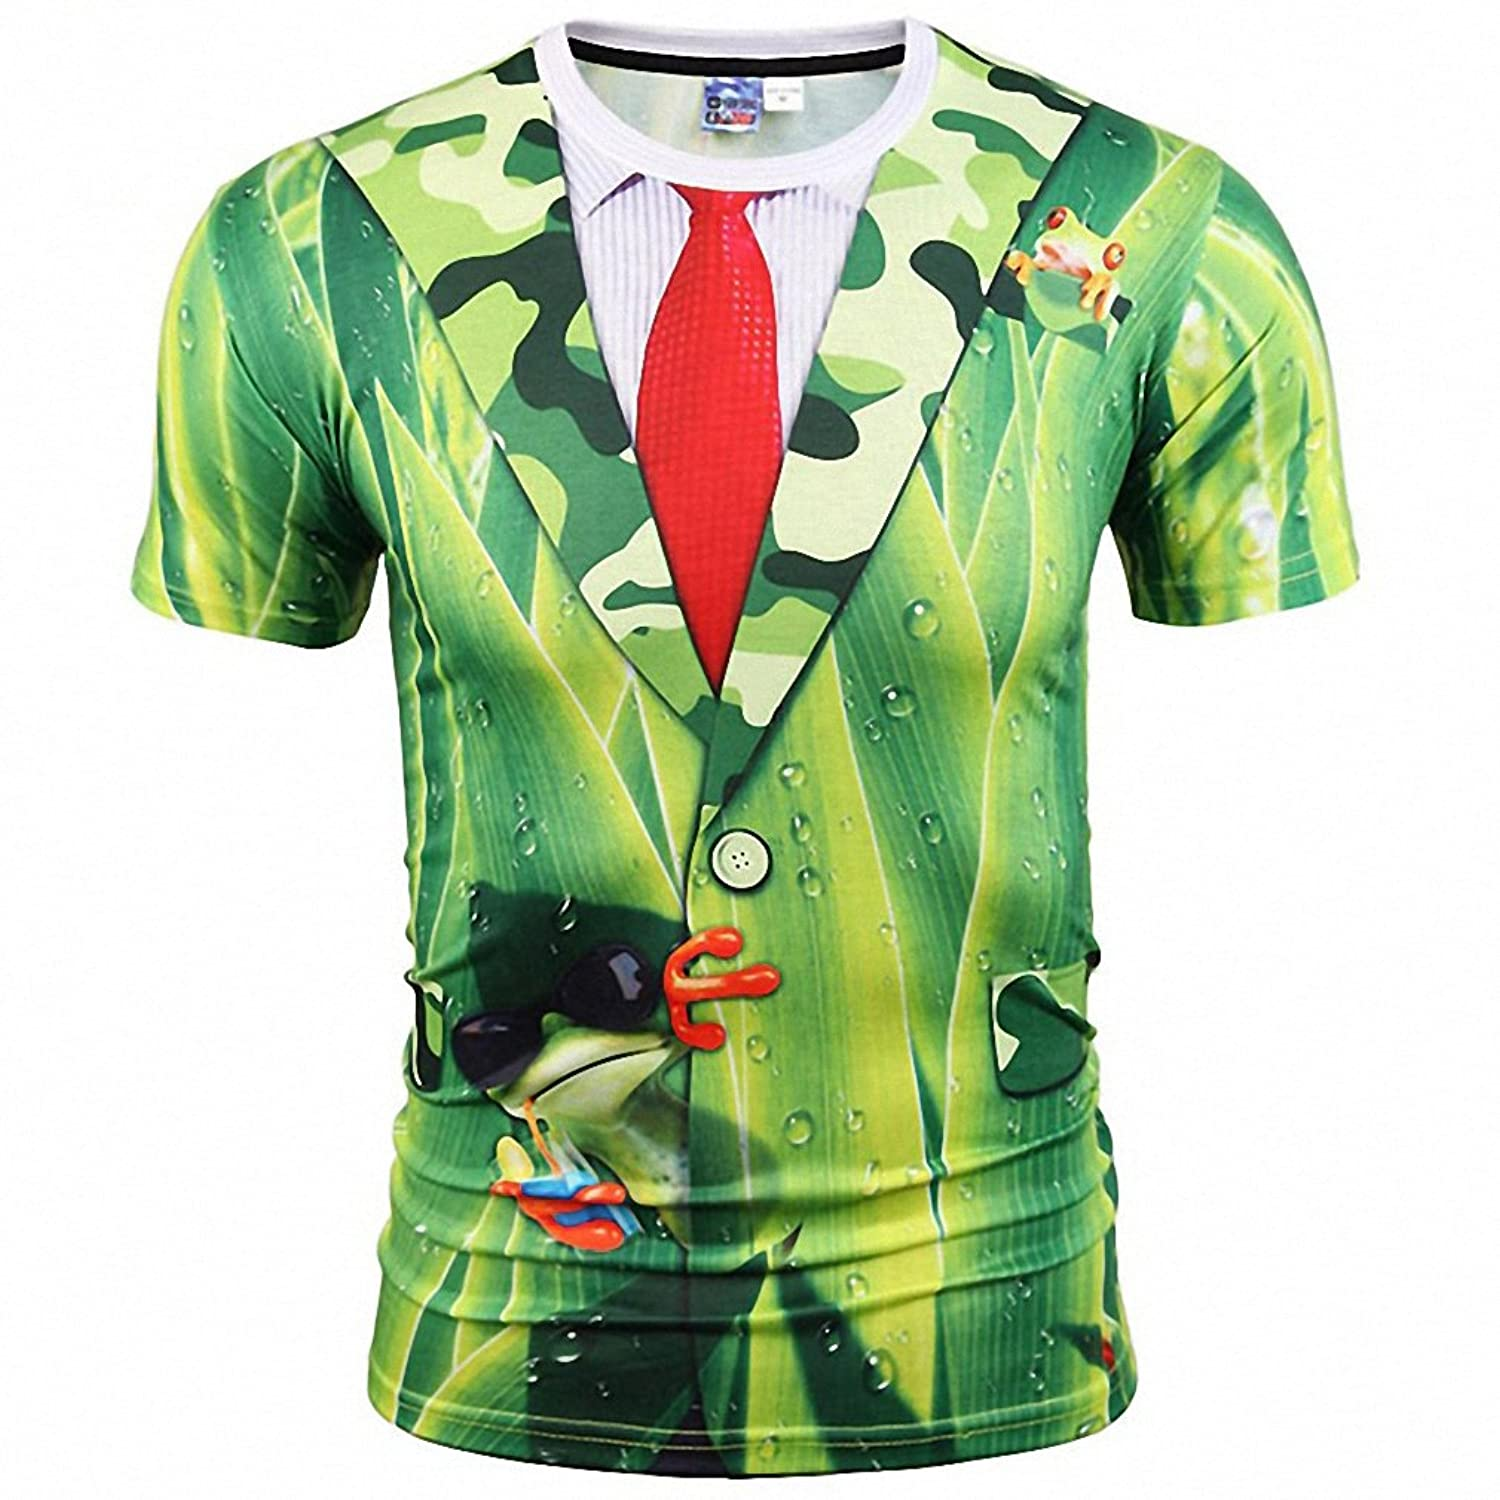 ICONLEE Nice Stylish T-shirt Men/Women Tees Shirts Print Green Leaves Suit Jacket Fake Two Pieces 3d T-shirt Summer Tops at Amazon Womens Clothing store: